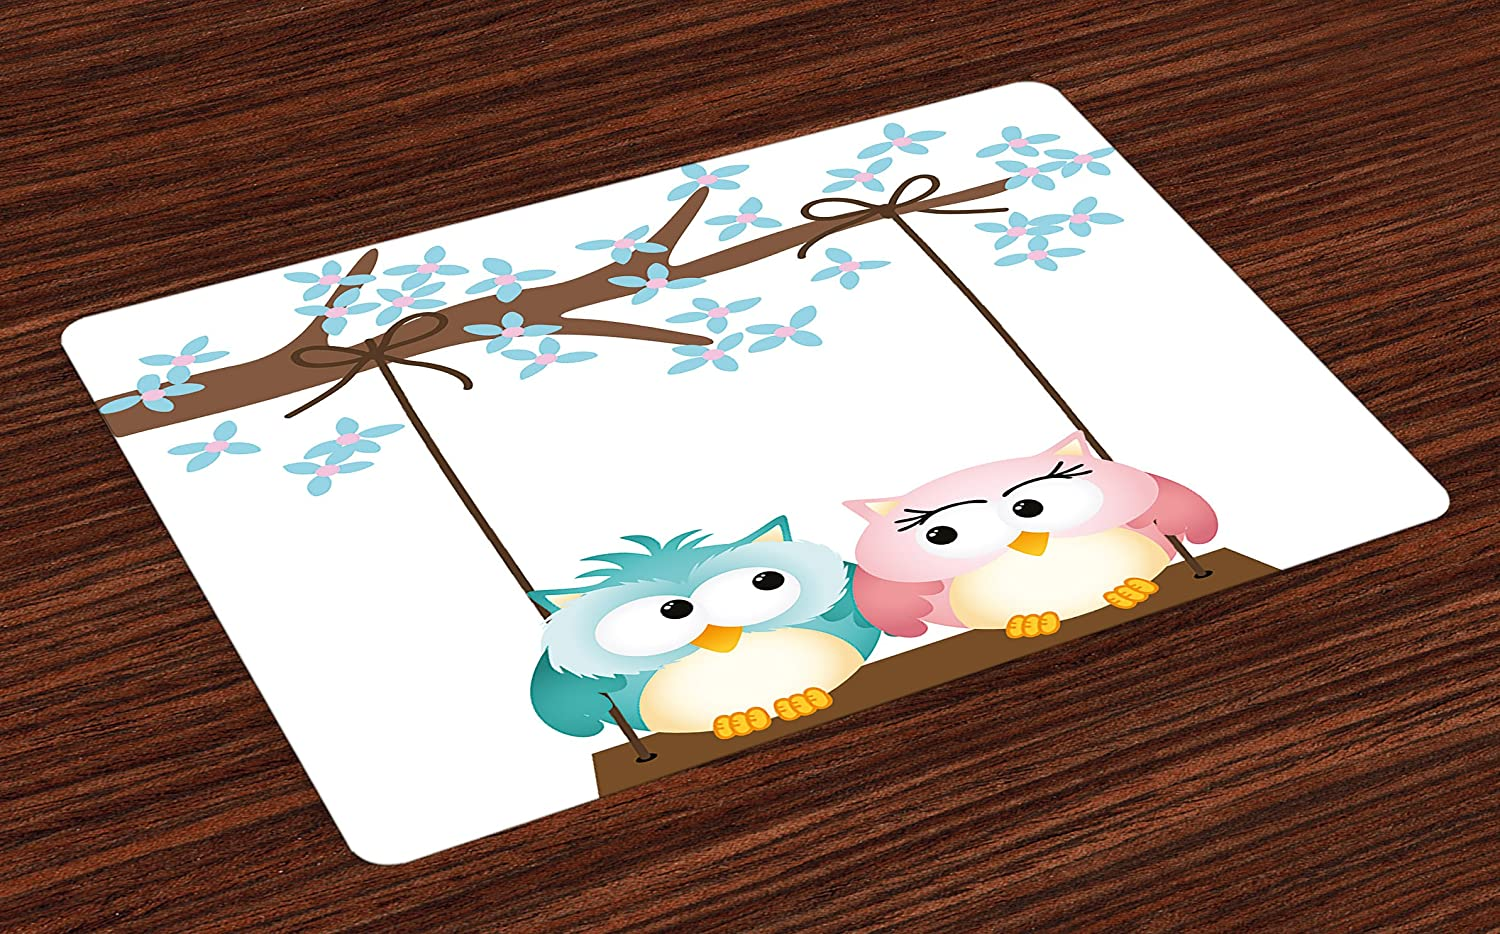 Ambesonne Nursery Place Mats Set of 4, Two Owls in Love on a Swing Blossoming Tree Branch Spring Romance, Washable Fabric Placemats for Dining Room Kitchen Table Decor, Pale Blue Pale Pink Brown